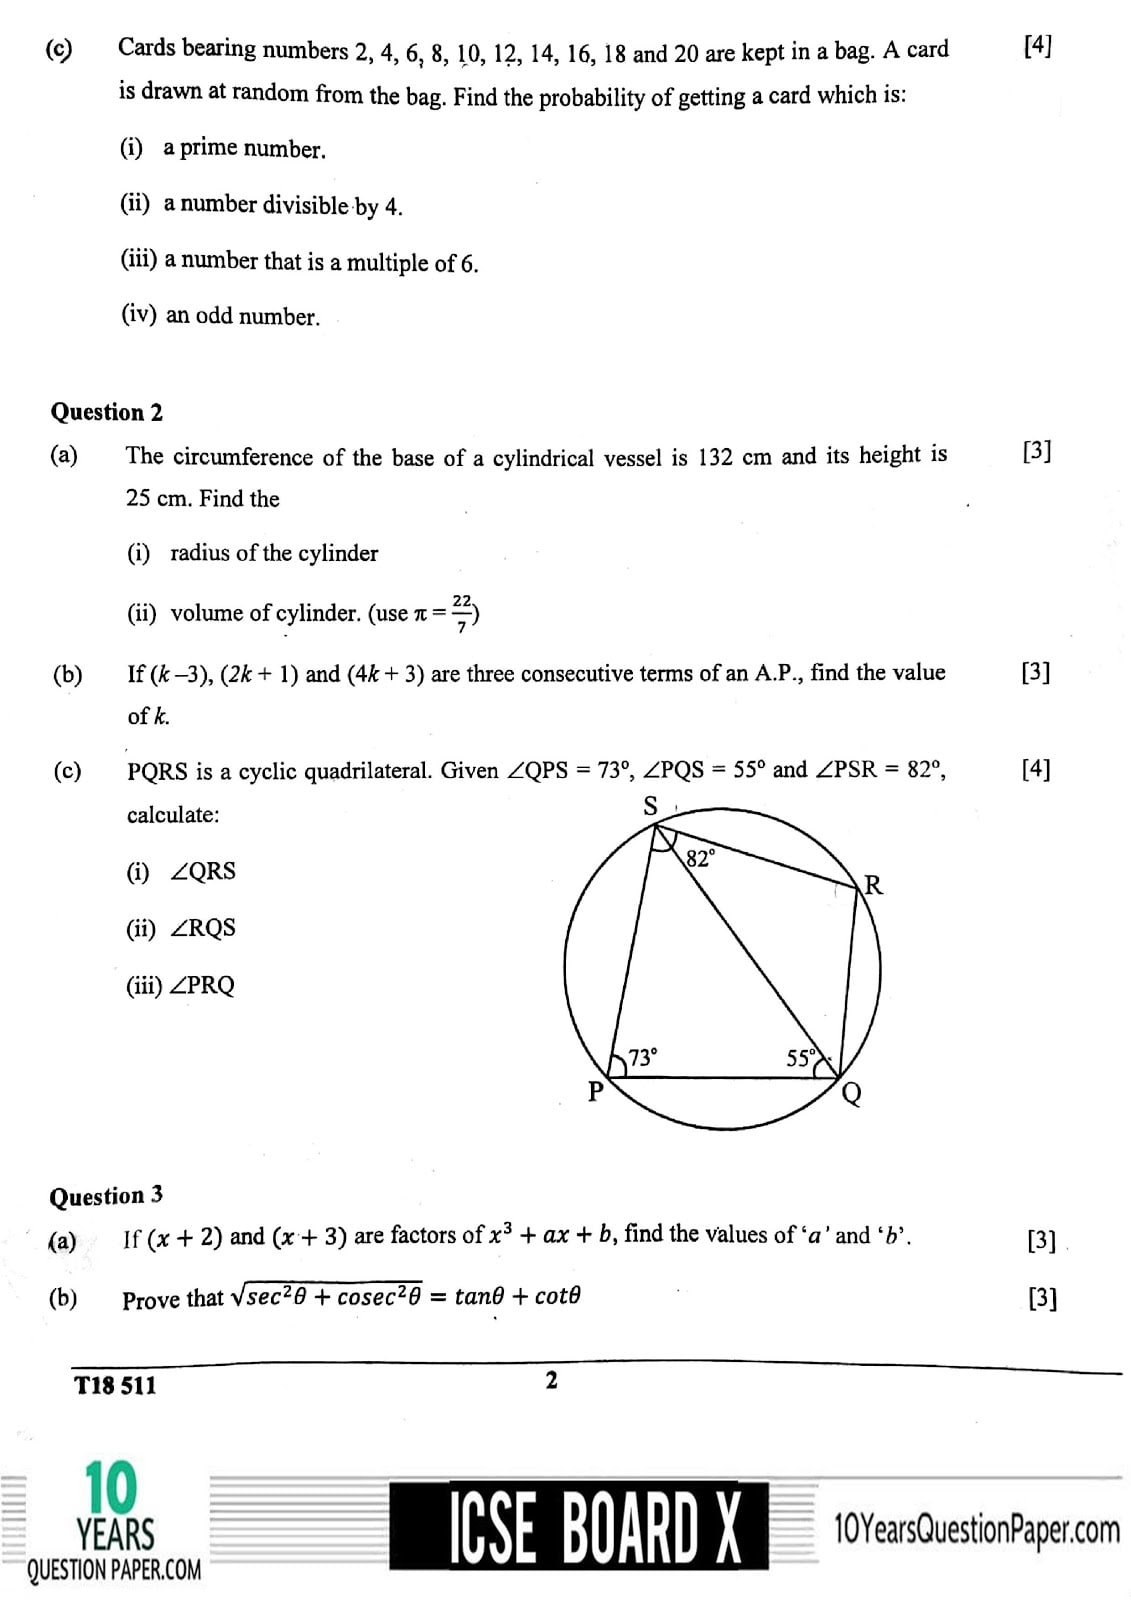 ICSE 2018 Mathematics Question Paper for Class 10